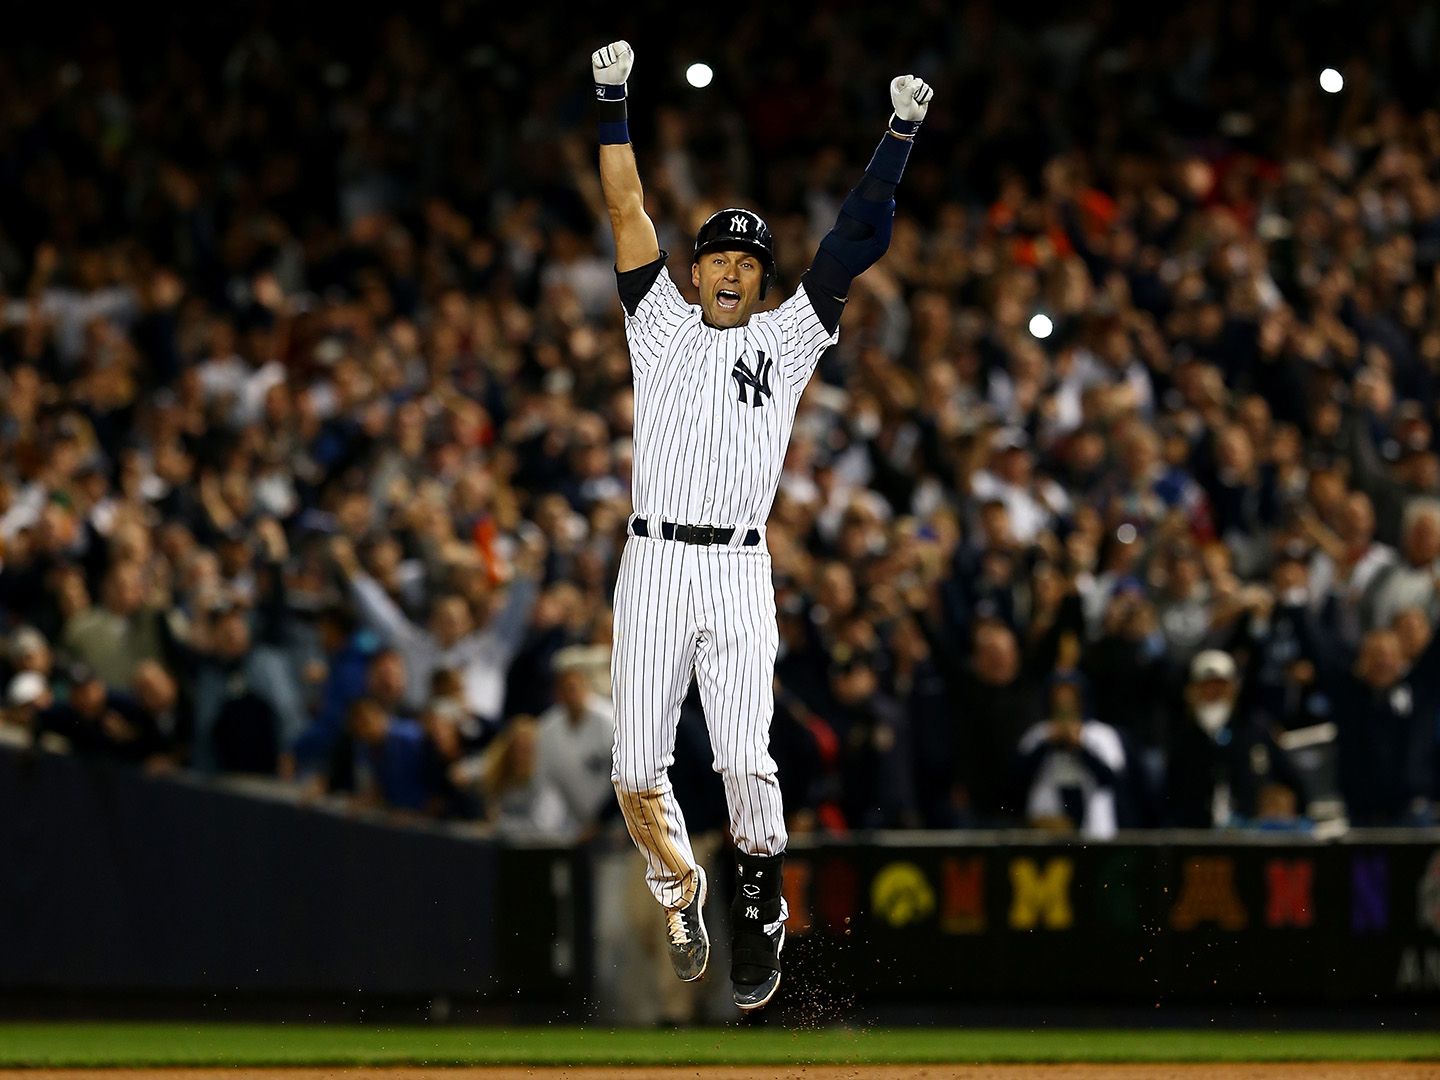 Derek Jeter's final home game